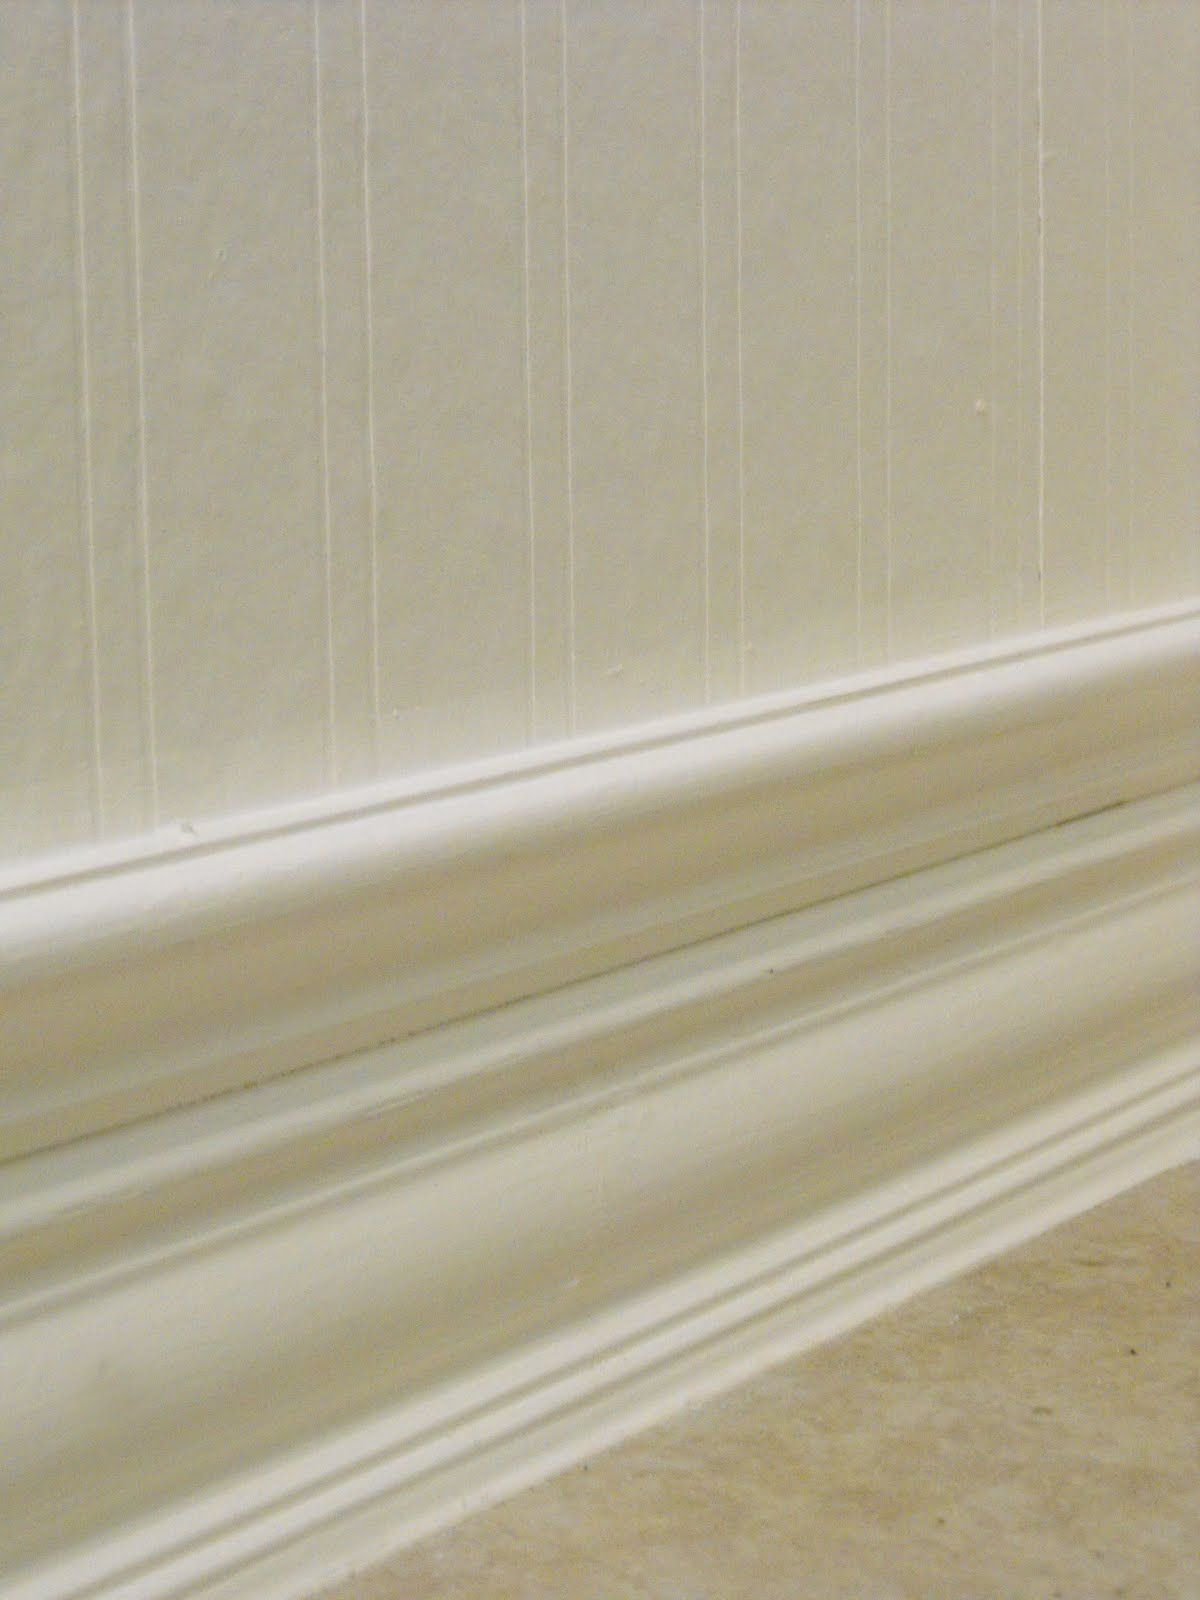 Beadboard wall papers and taller baseboard by adding a trim to the make small baseboards bigger by adding additional molding on top caulk trick use painters tape to keep line straight peel off before dry doublecrazyfo Image collections